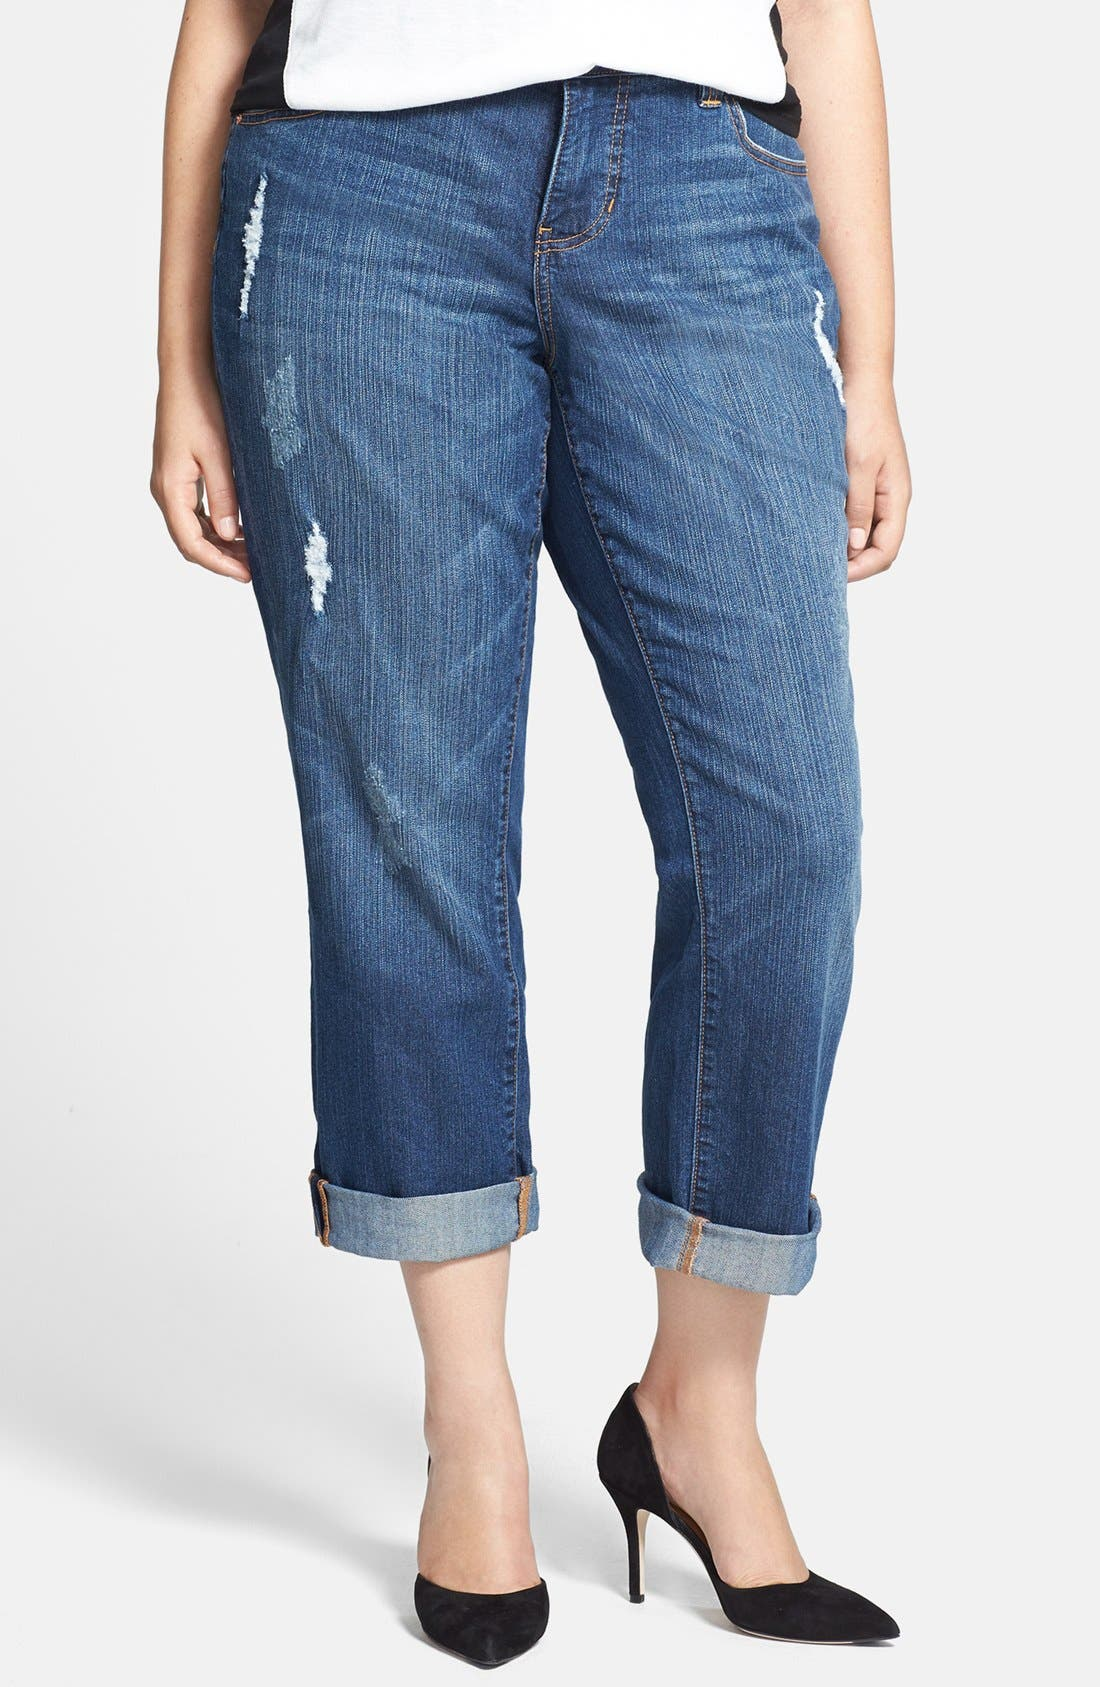 Alternate Image 1 Selected - Jag Jeans 'Henry' Destroyed Boyfriend Jeans (Reservoir) (Plus Size)